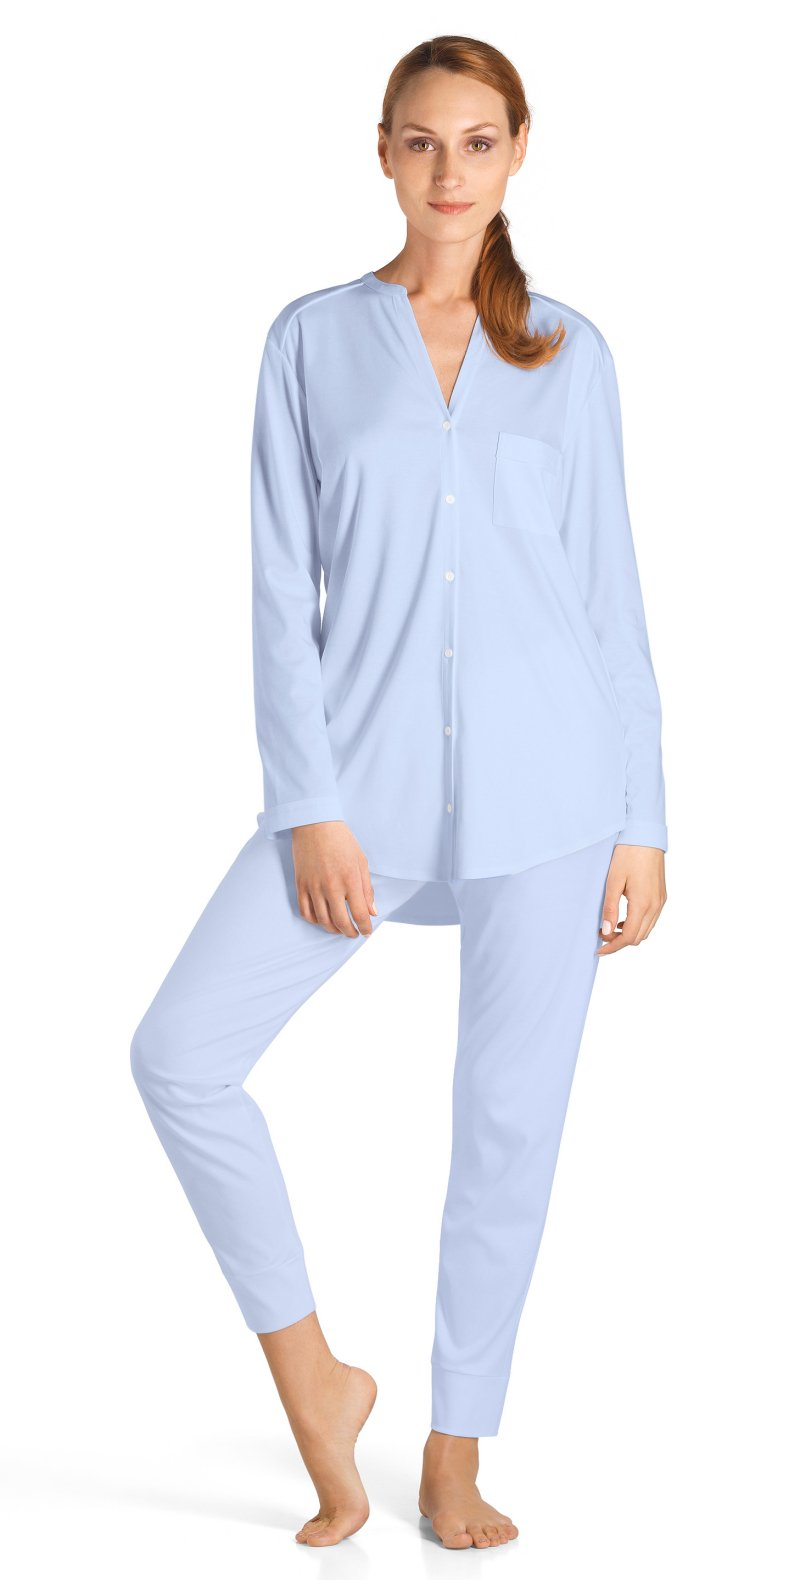 HANRO Women's Pure Essence Pajama, Blue Glow, Medium by HANRO (Image #1)